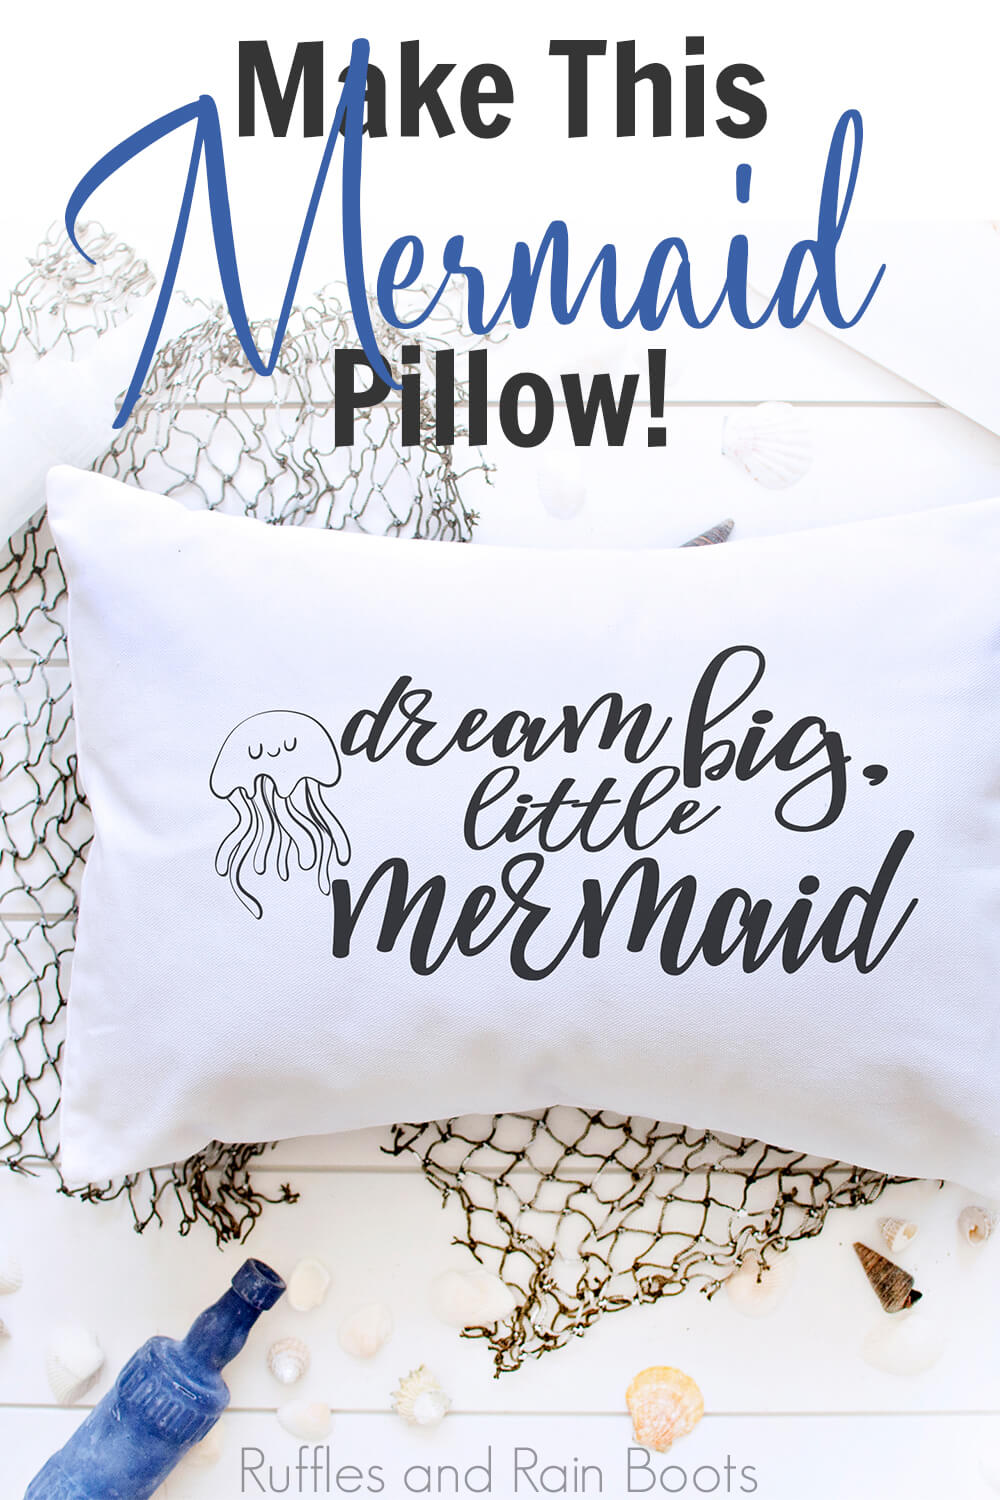 Dream big little Mermaid free mermaid cut file on a throw pillow on a fishing net with text which reads make this mermaid pillow!